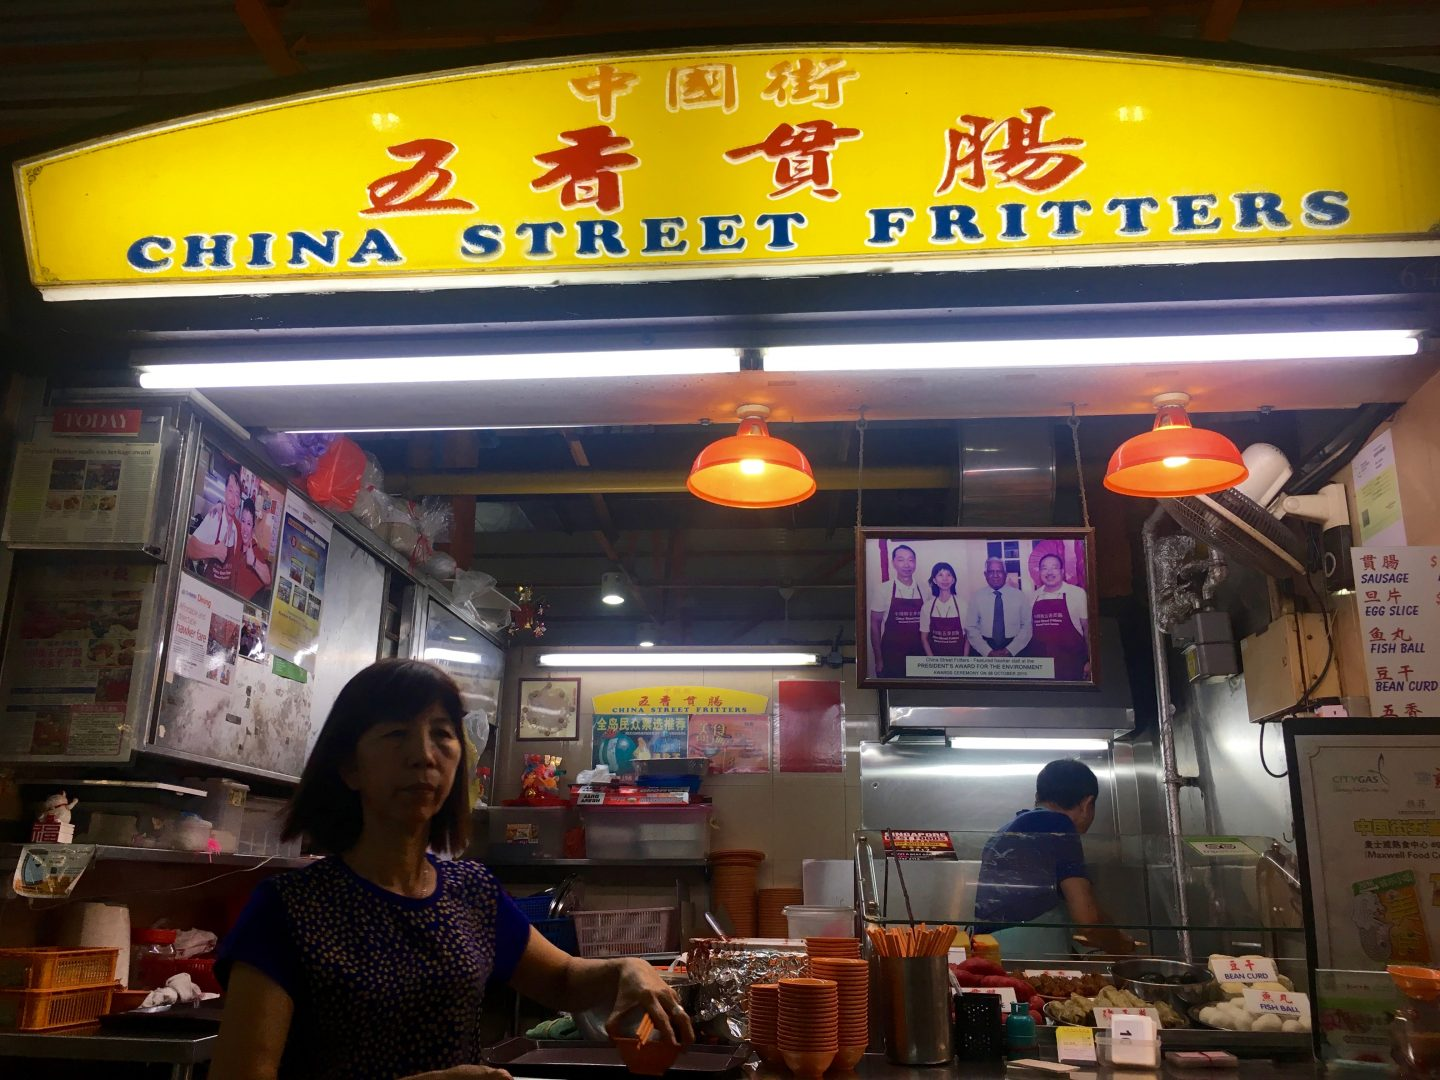 China Street Fritters